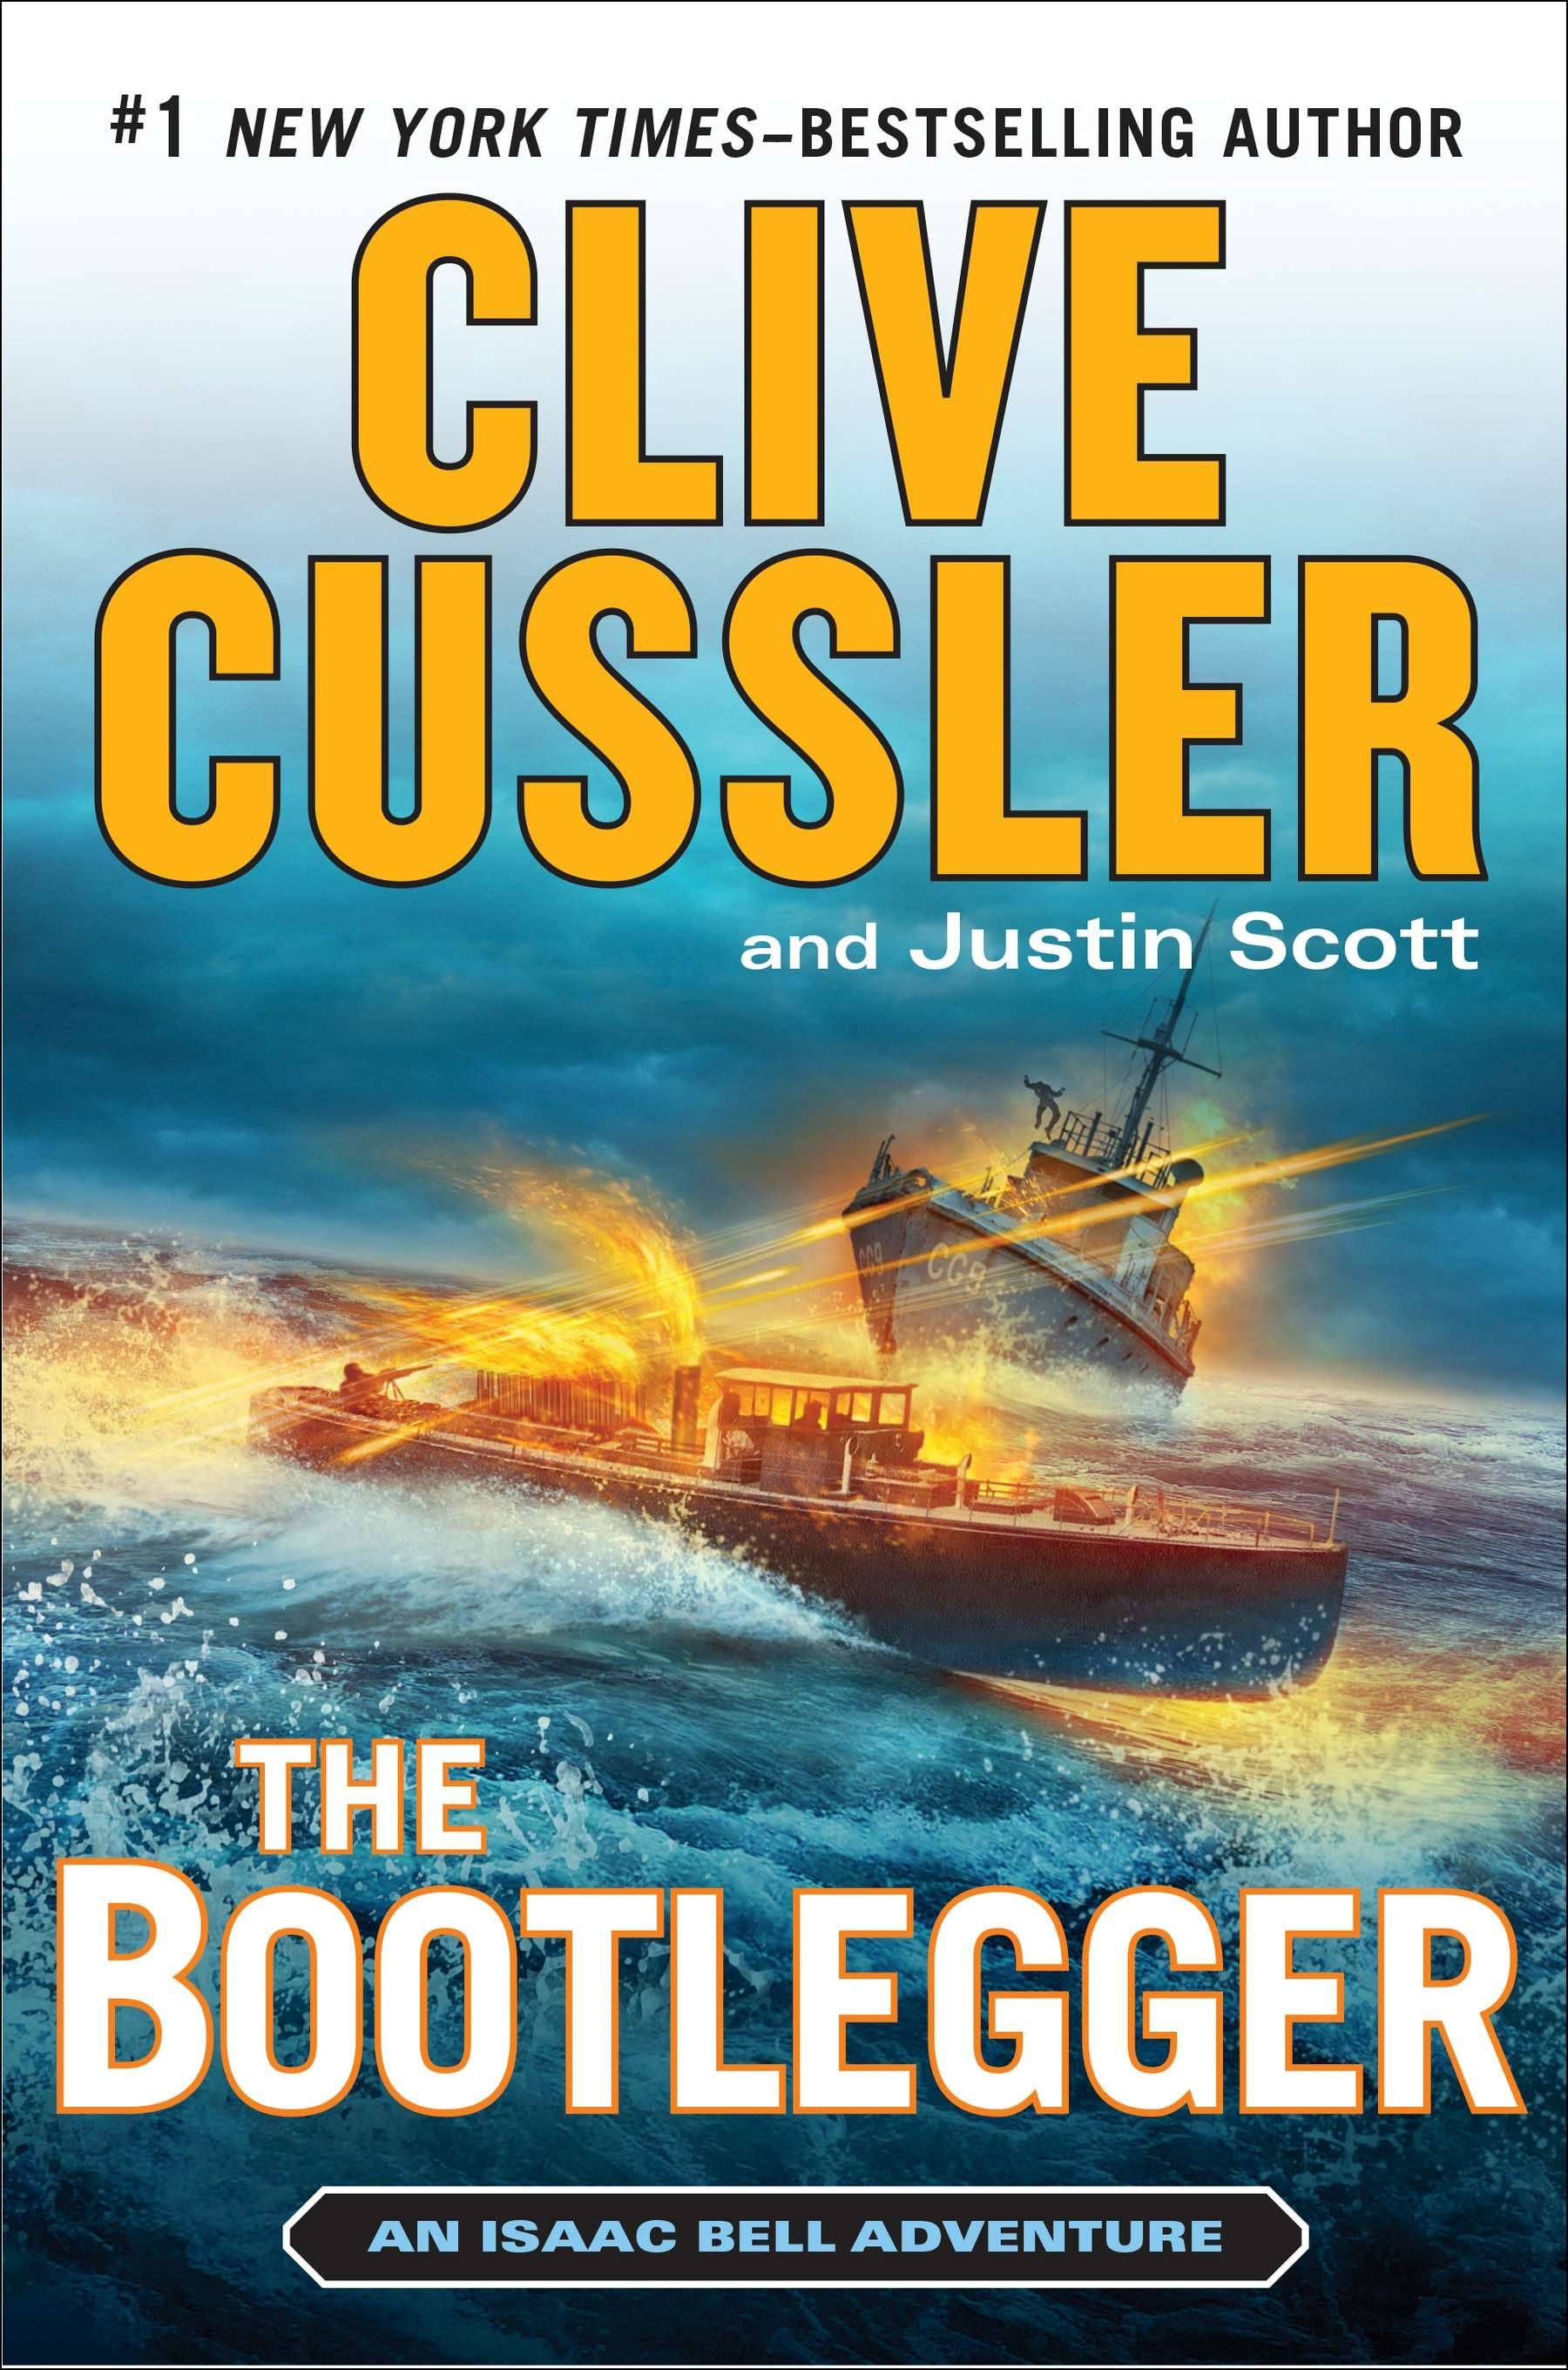 """The Bootlegger"" is the latest Isaac Bell adventure from Clive Cussler and Justin Scott."